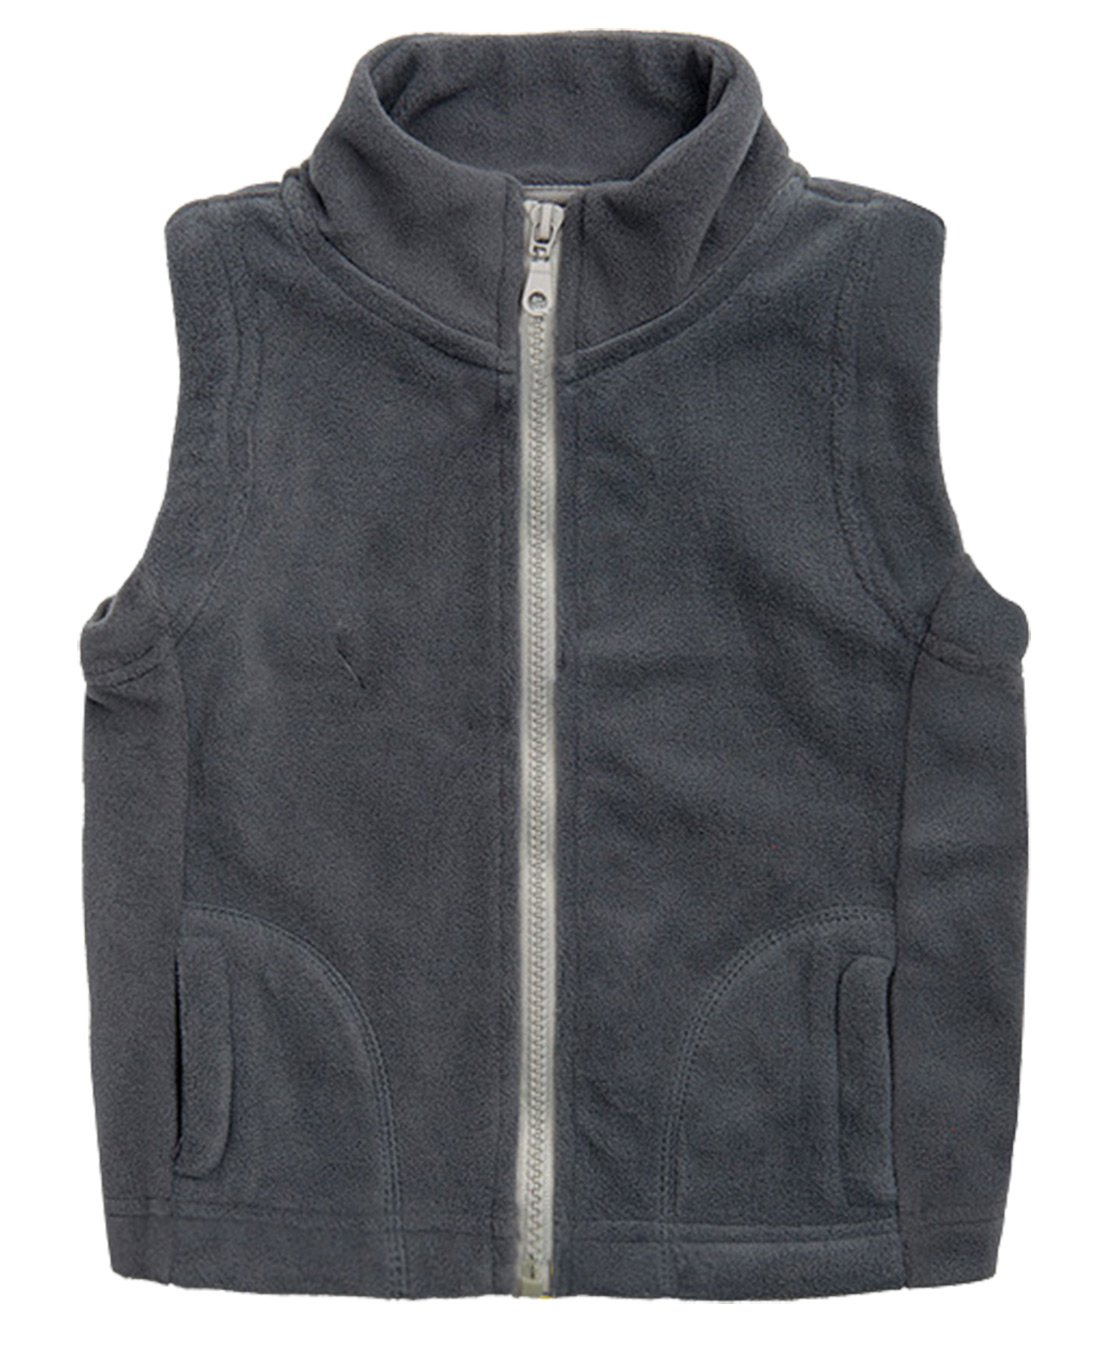 Aivtalk Boys' Warmth Fleece Sleeveless Winter Outer Vest Grey Size S